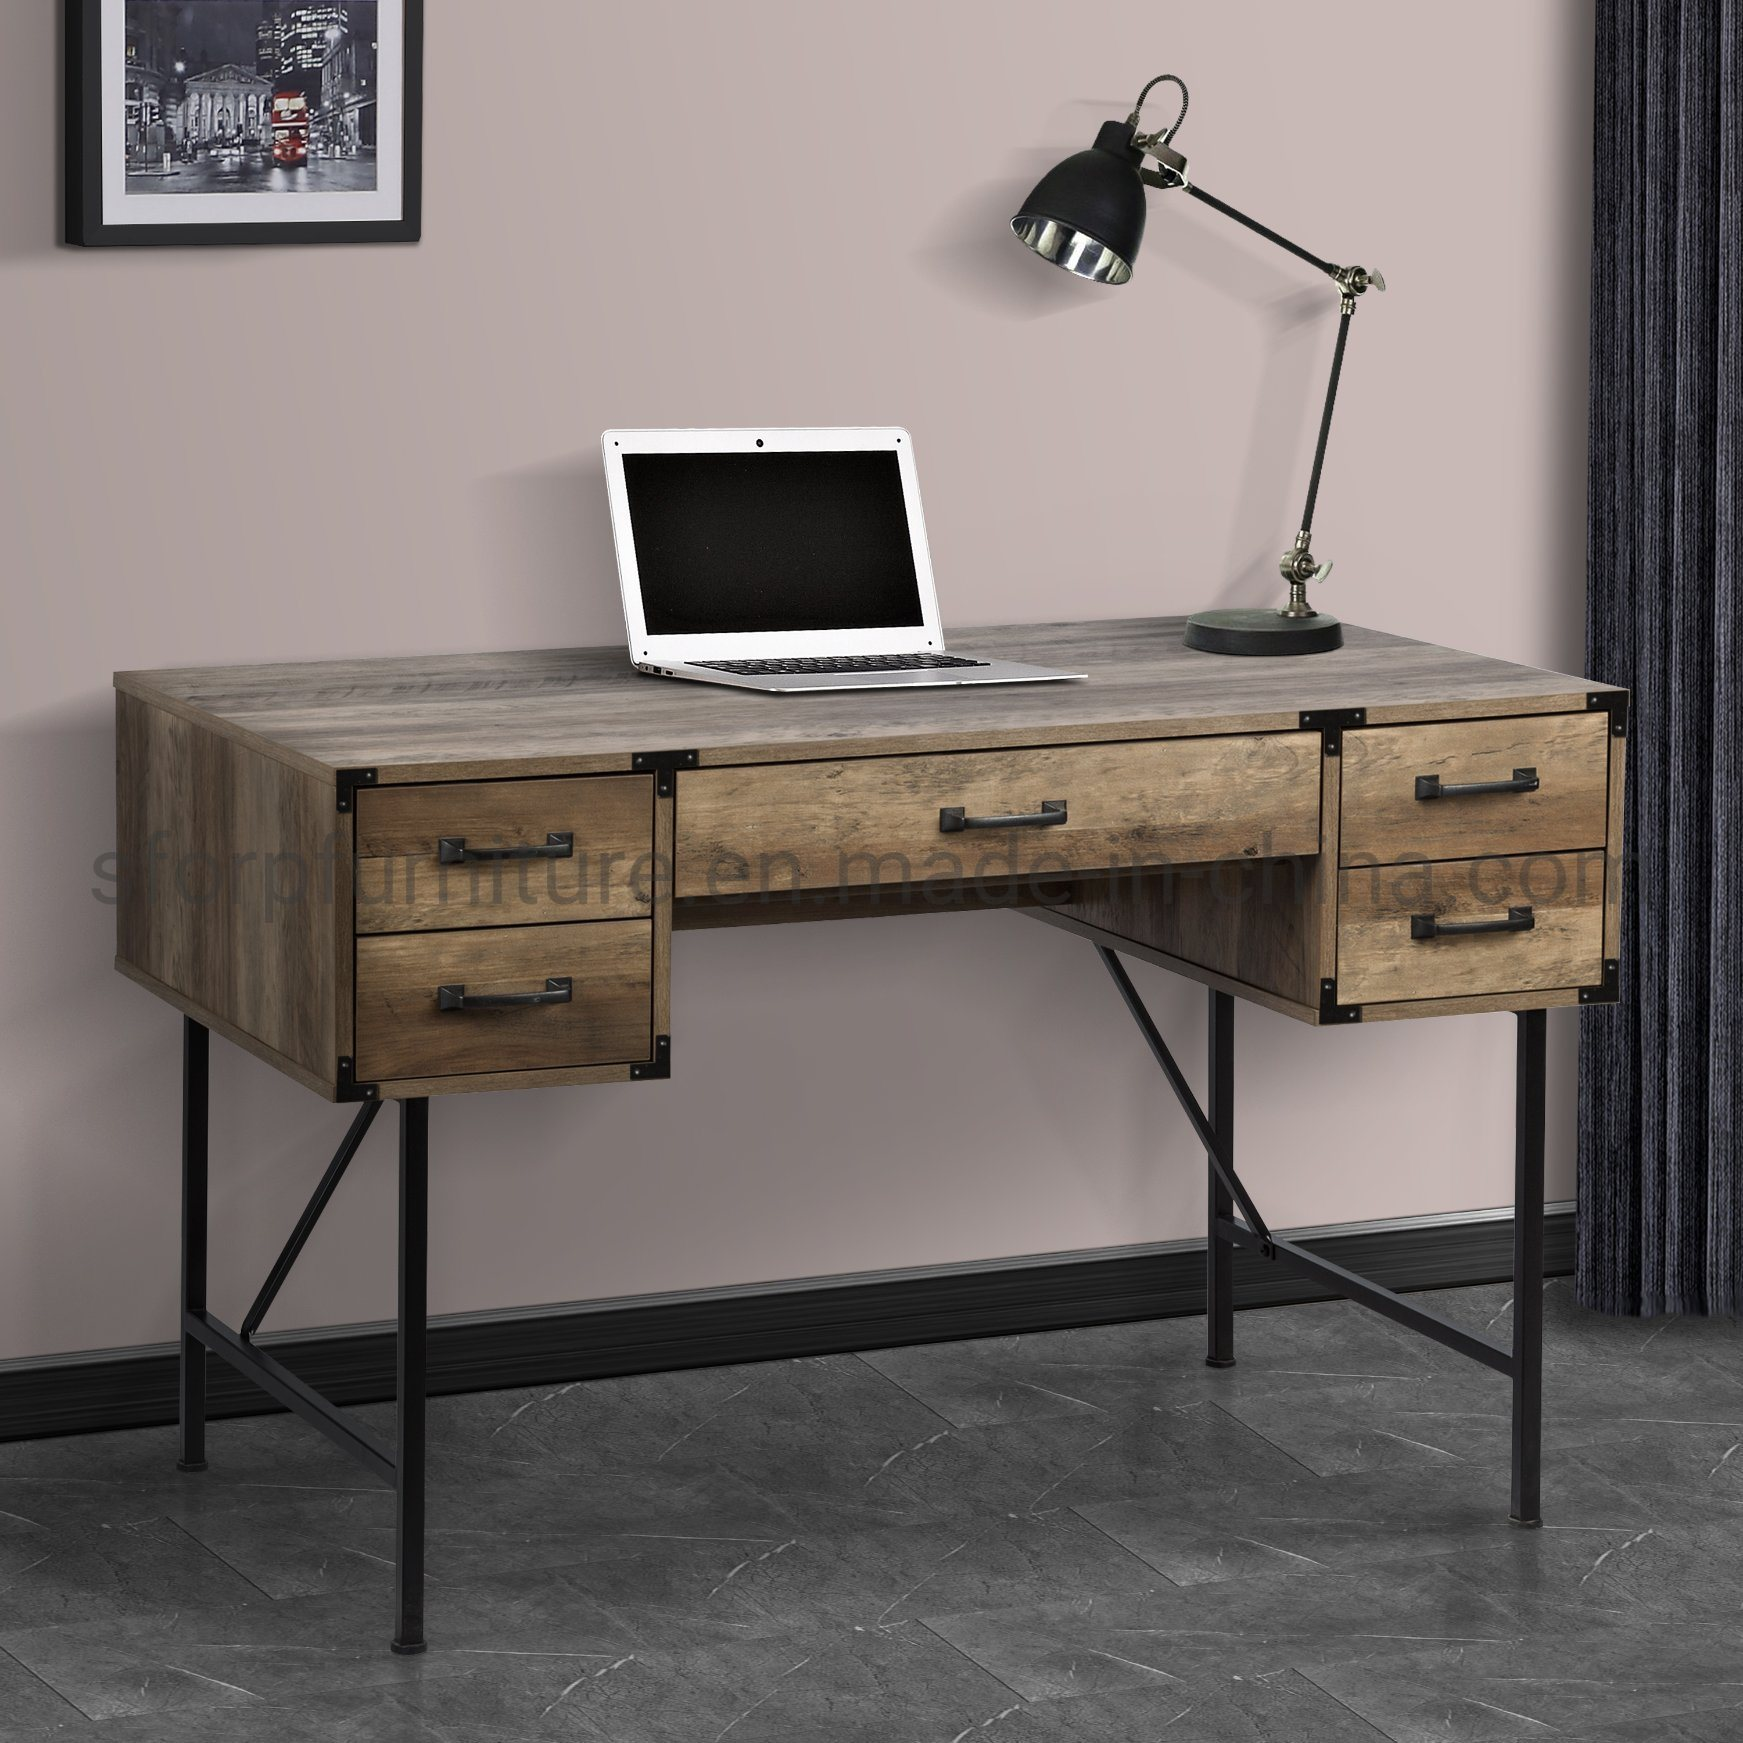 China Home Office Furniture Wooden Rustic Oak Color Writing Desk China Writing Desk Office Furniture Writing Desk